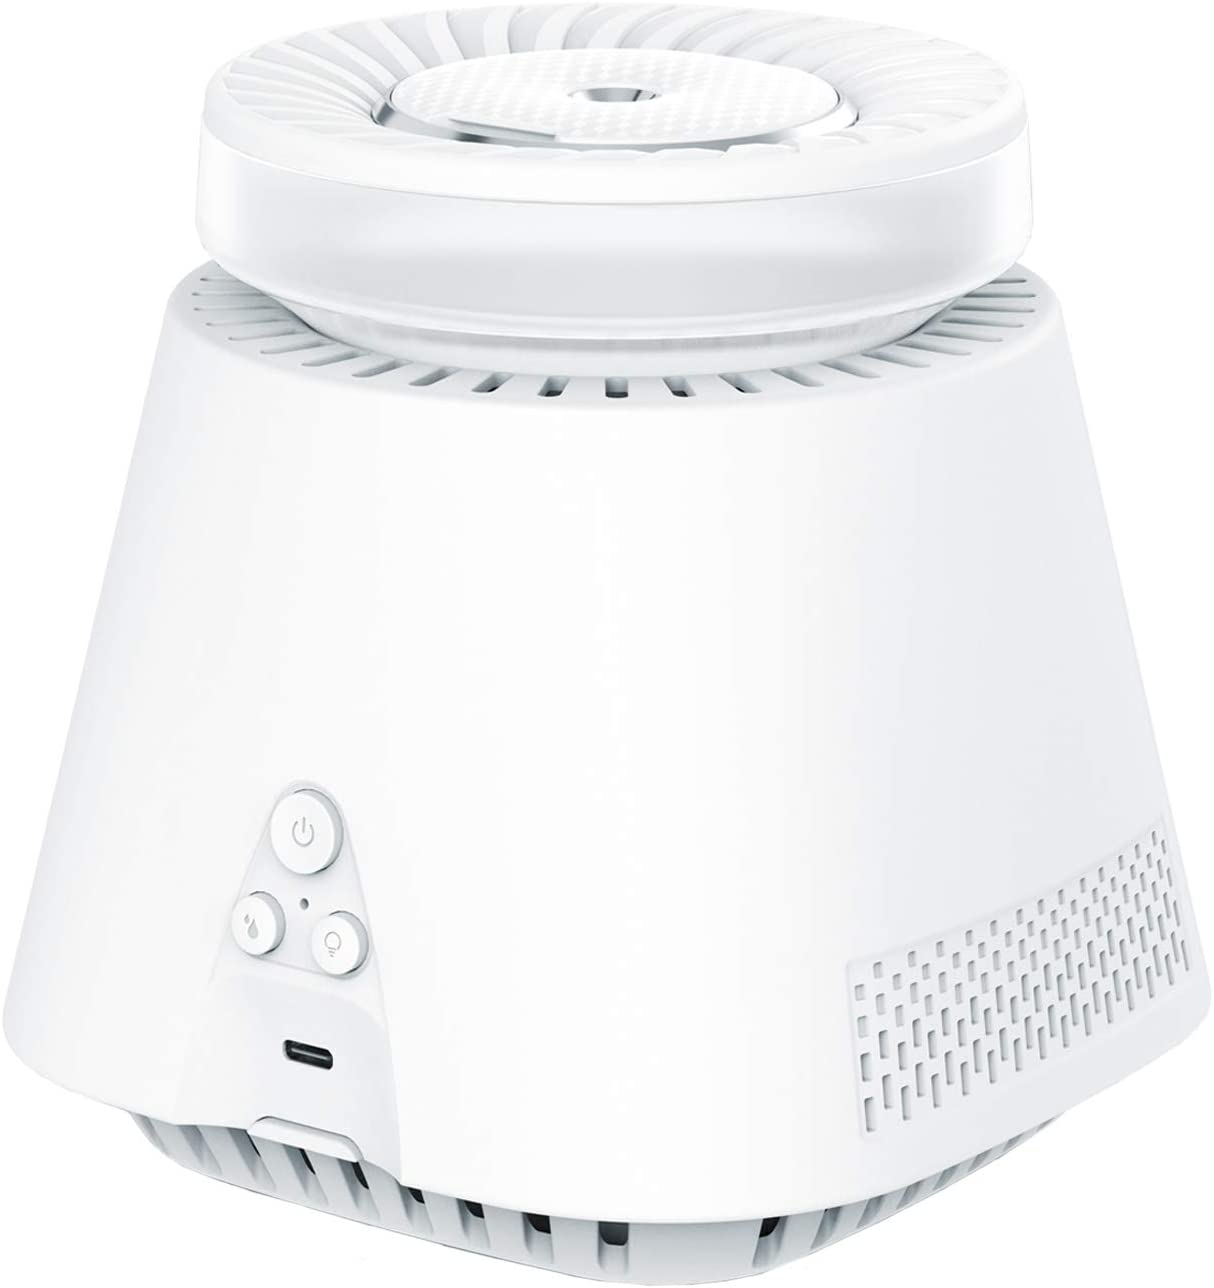 Thsinde Air Purifier, Home Air Purifiers Cool Mist Humidifiers 2-in-1 for Bedroom, Small Room and Office Whisper Quiet